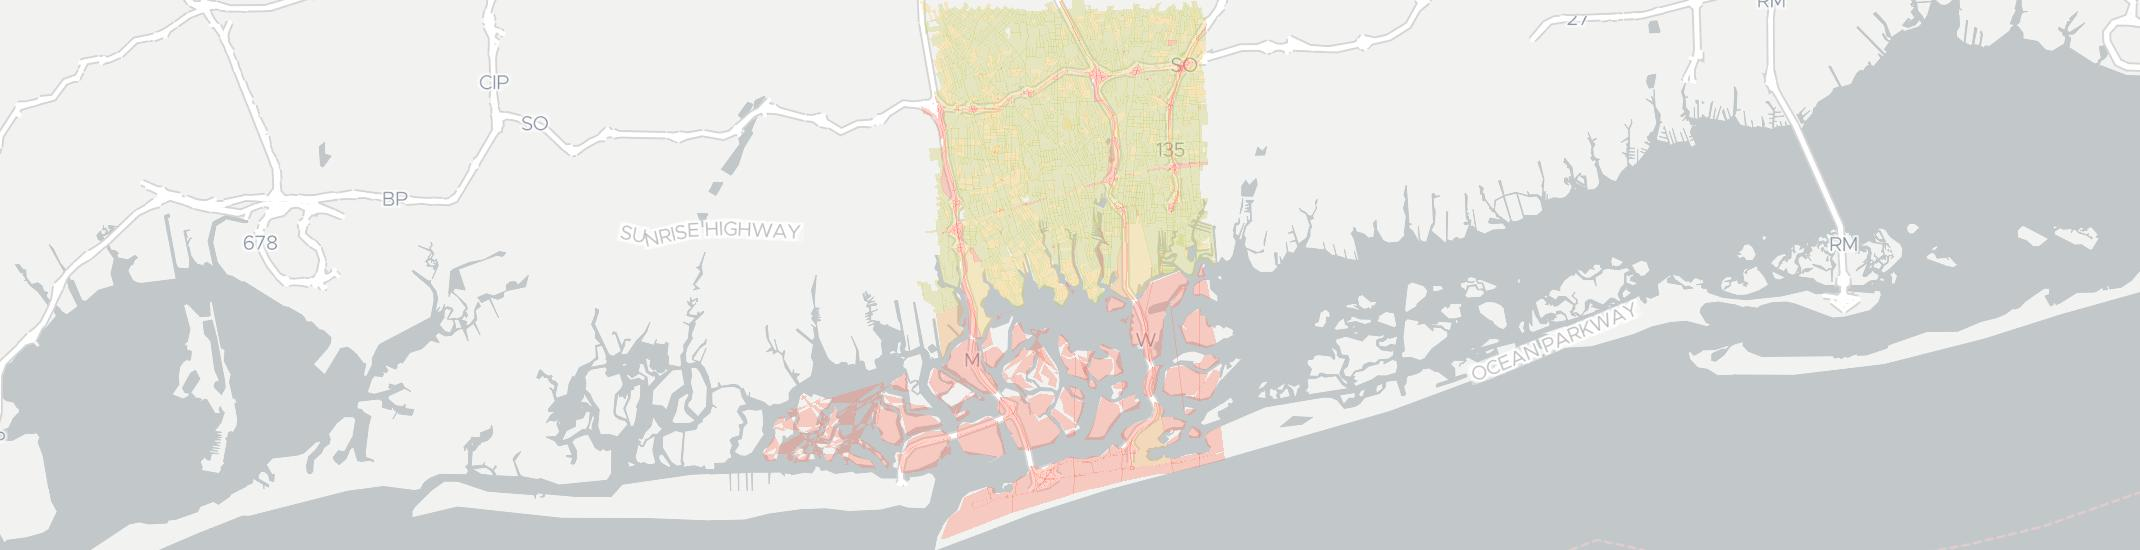 Wantagh Internet Competition Map. Click for interactive map.